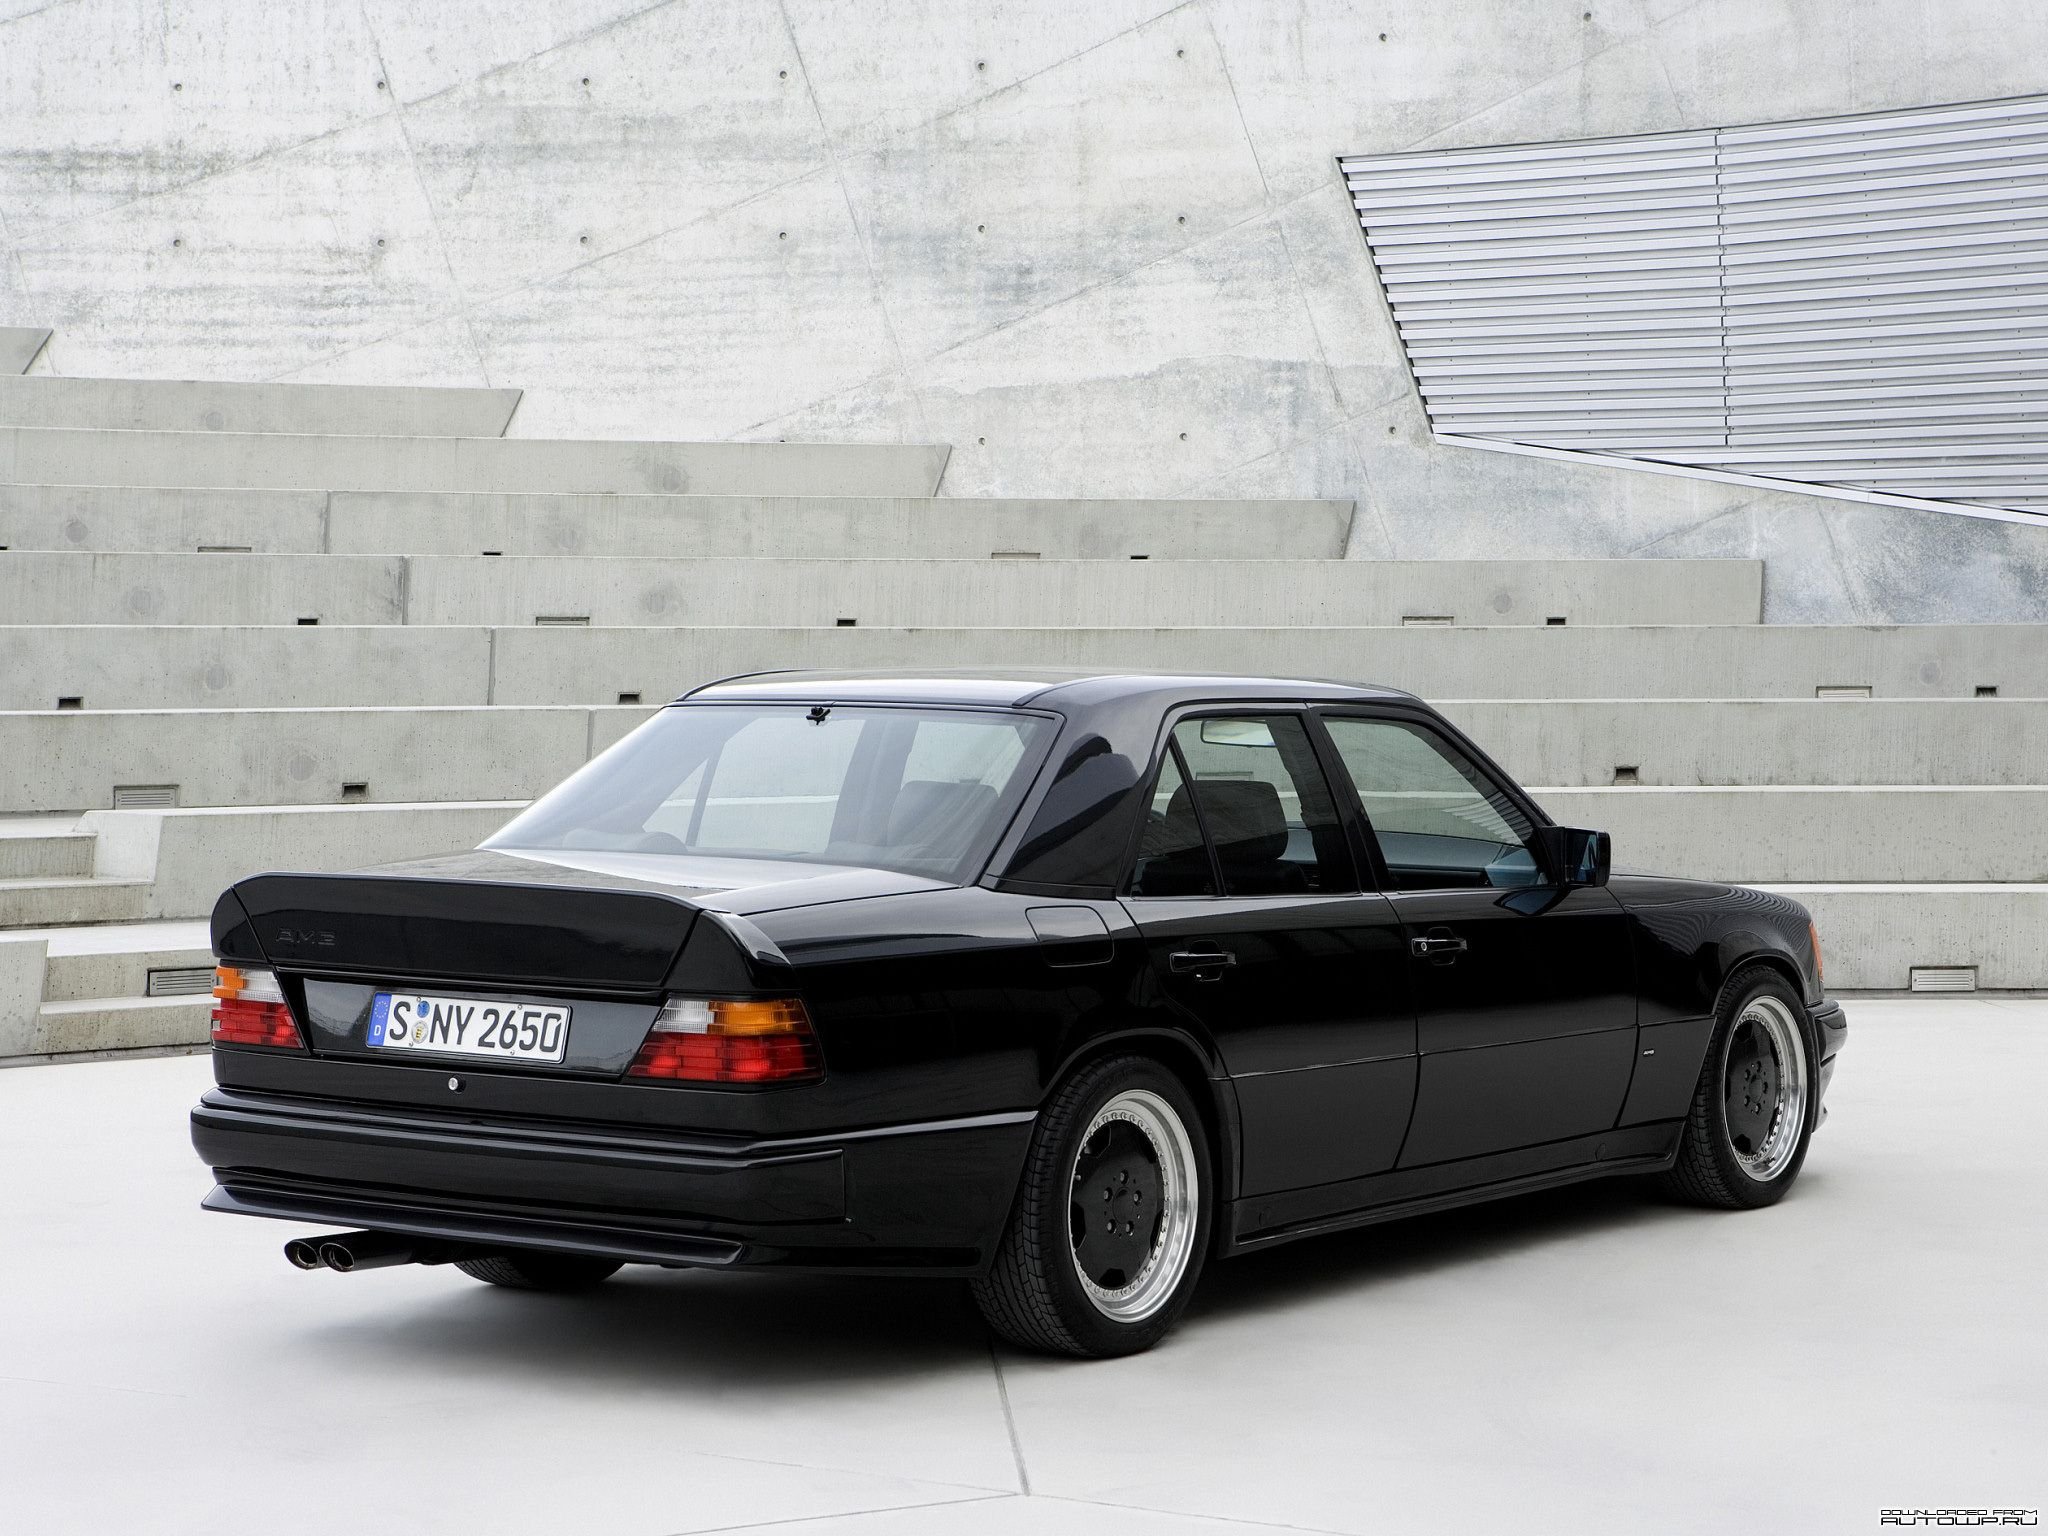 Mercedes Benz Amg 300e 6 0 Hammer With Images Mercedes Benz Amg